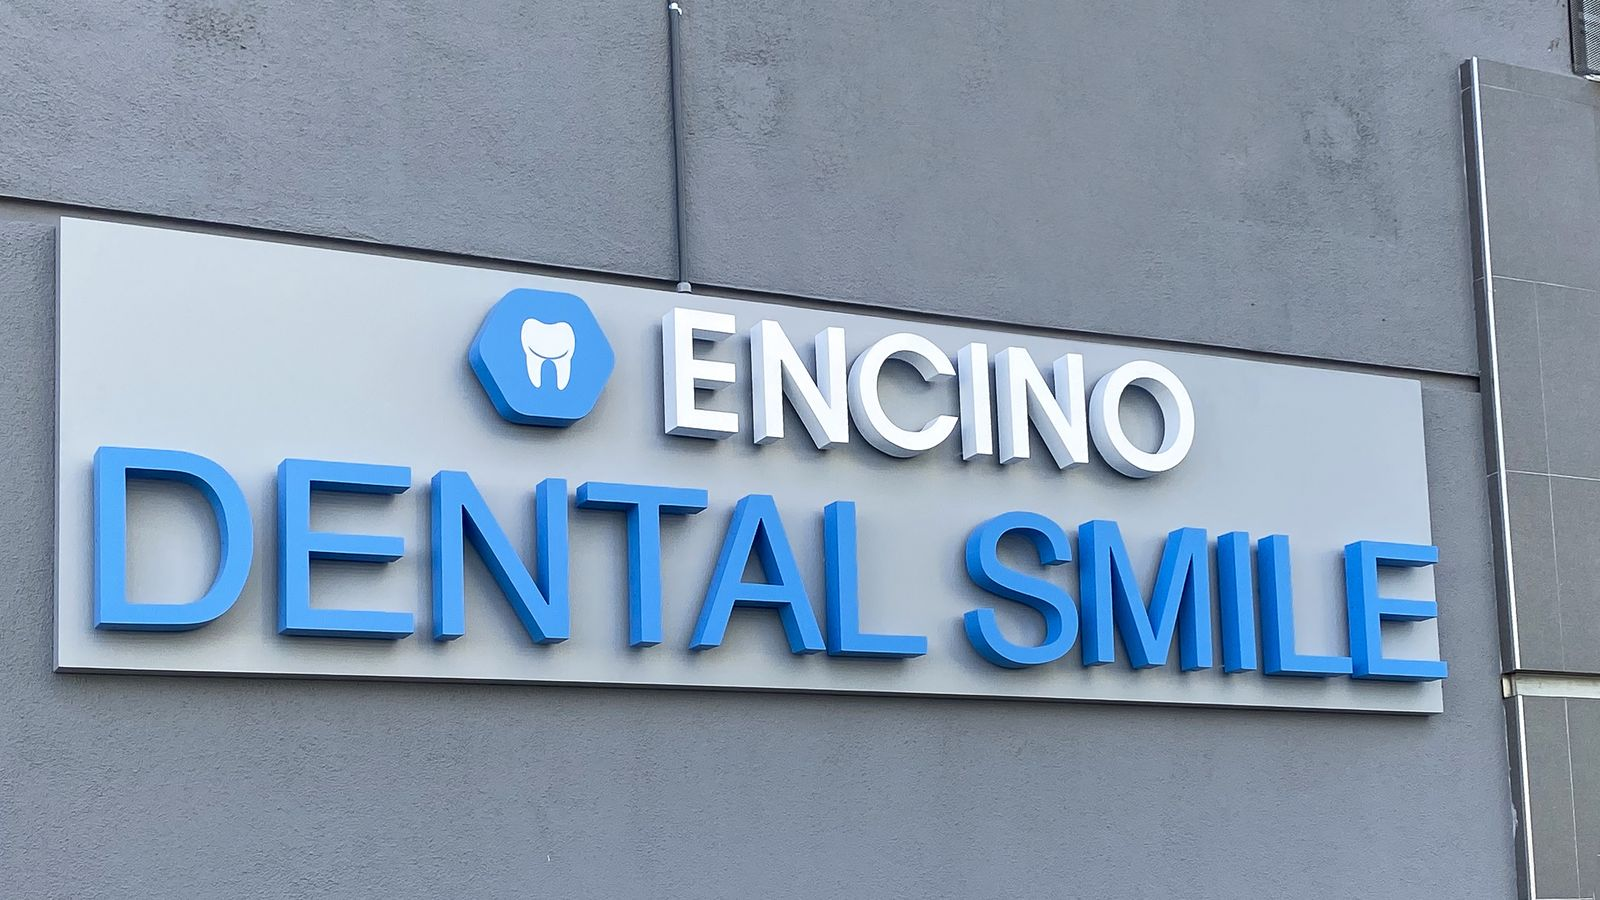 Encino Dental Smile illuminated 3d logo sign and letters made of aluminum and acrylic